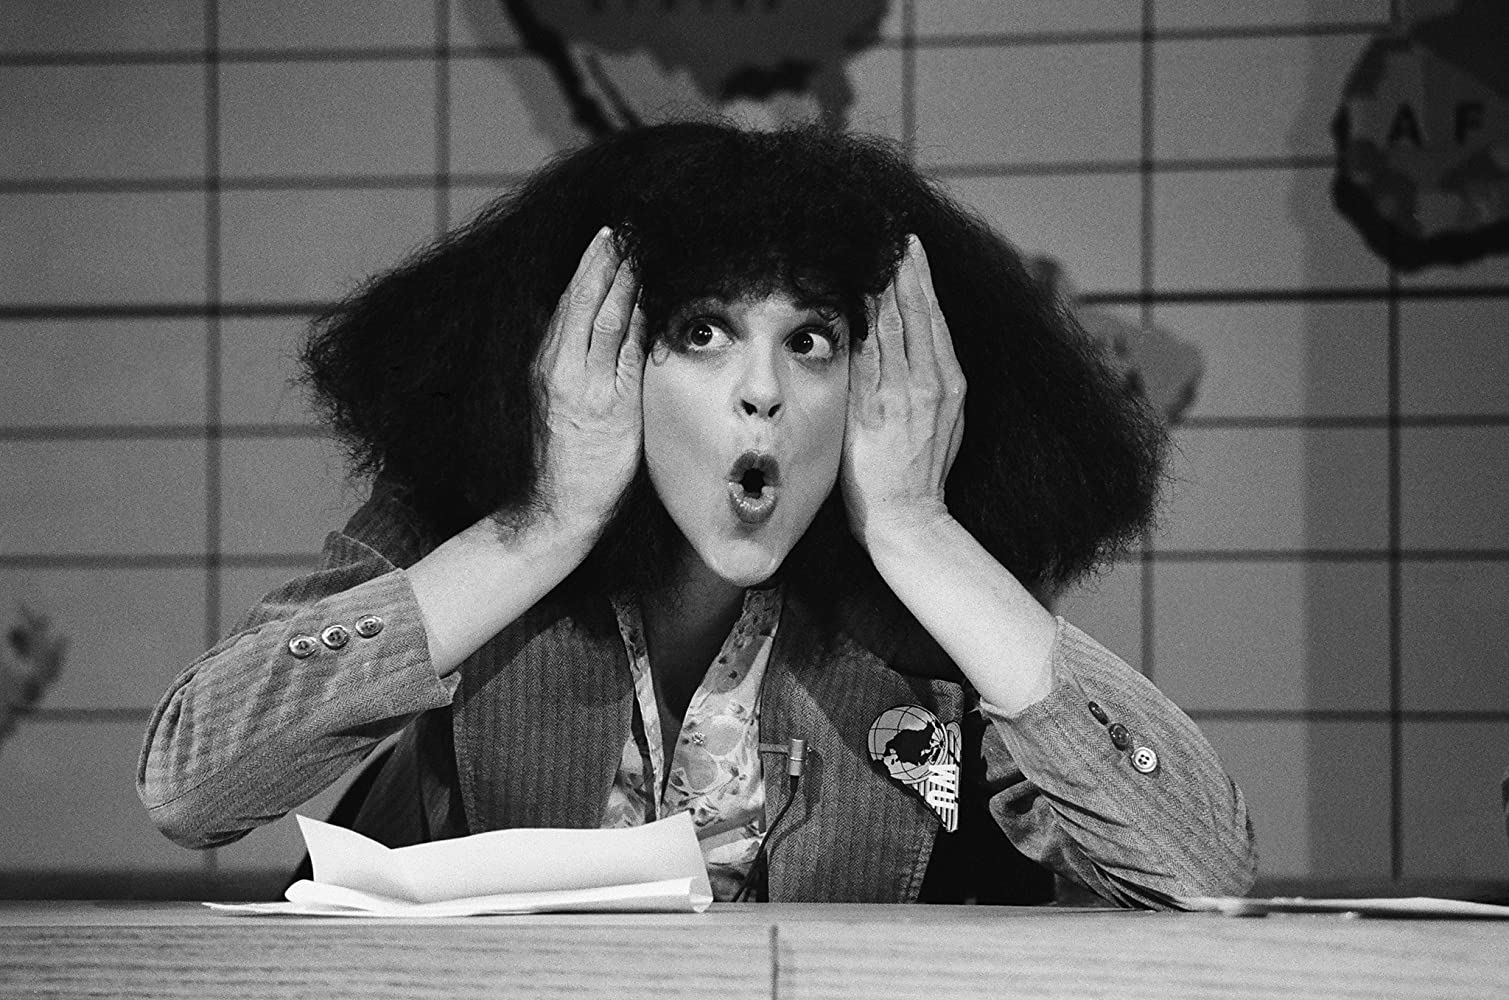 Gilda Radner at an event for Saturday Night Live 1975